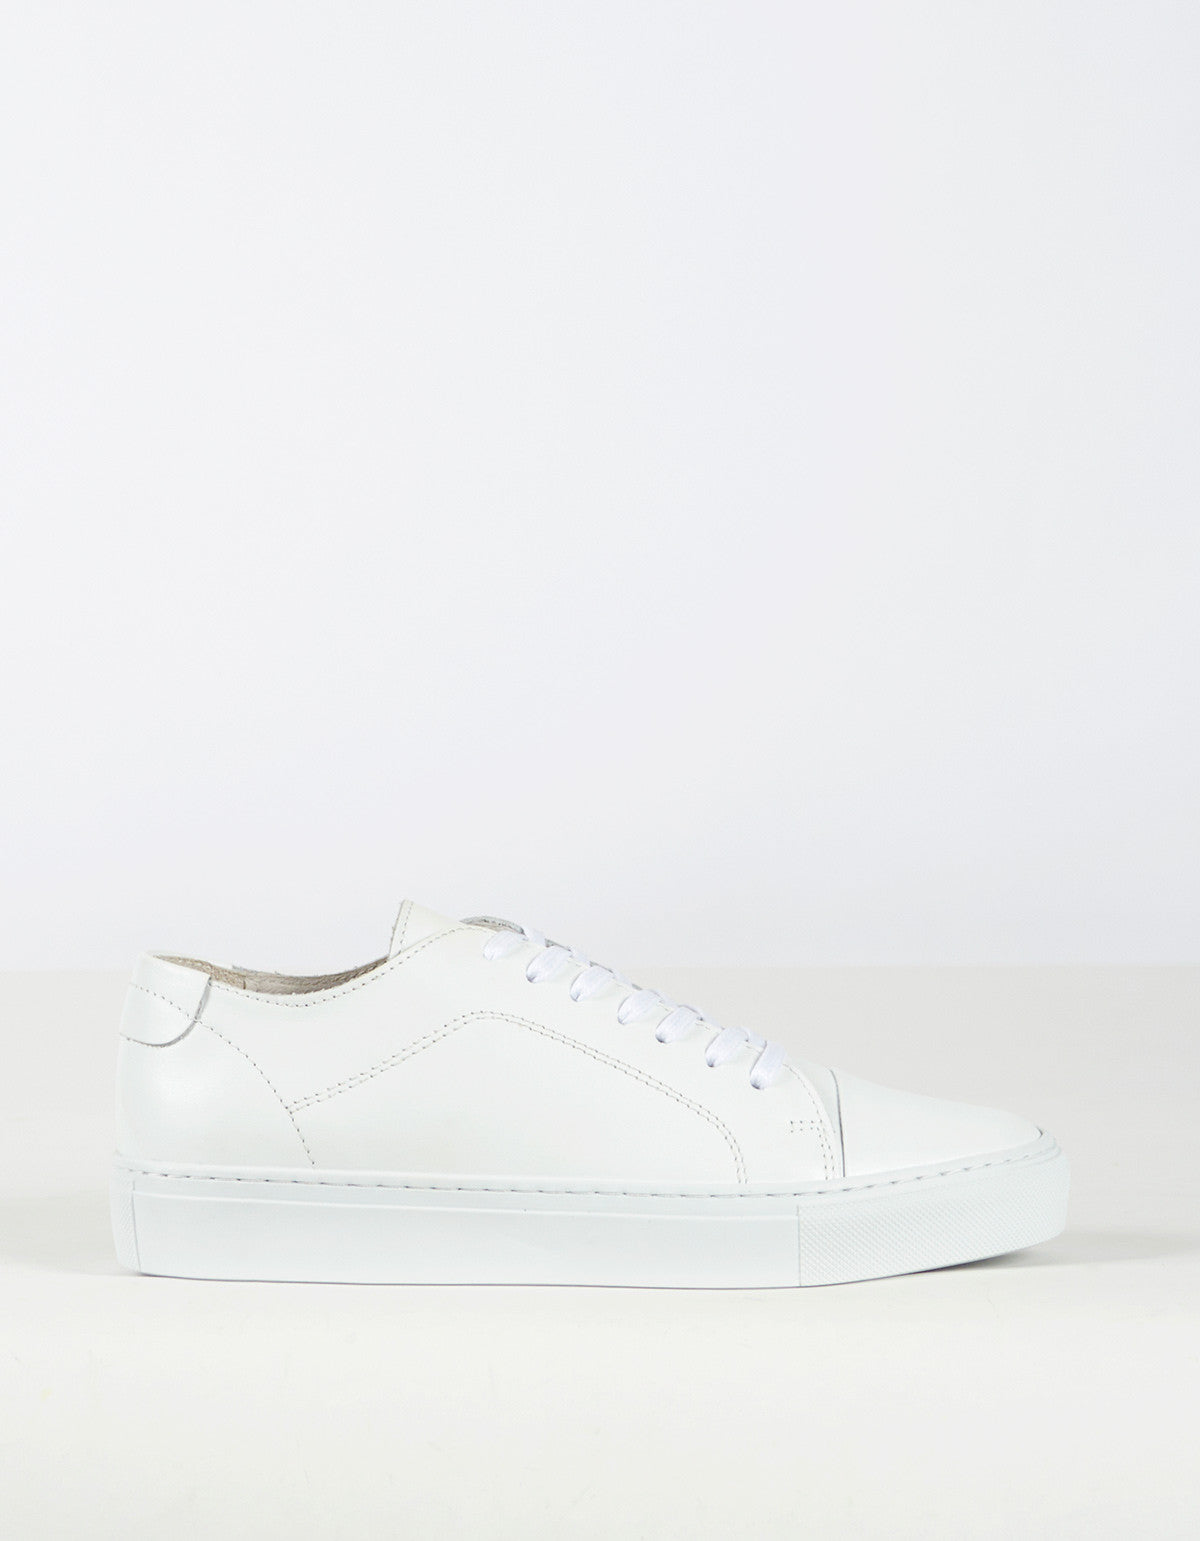 Garment Project Classic Lace Sneaker White - Still Life - 1